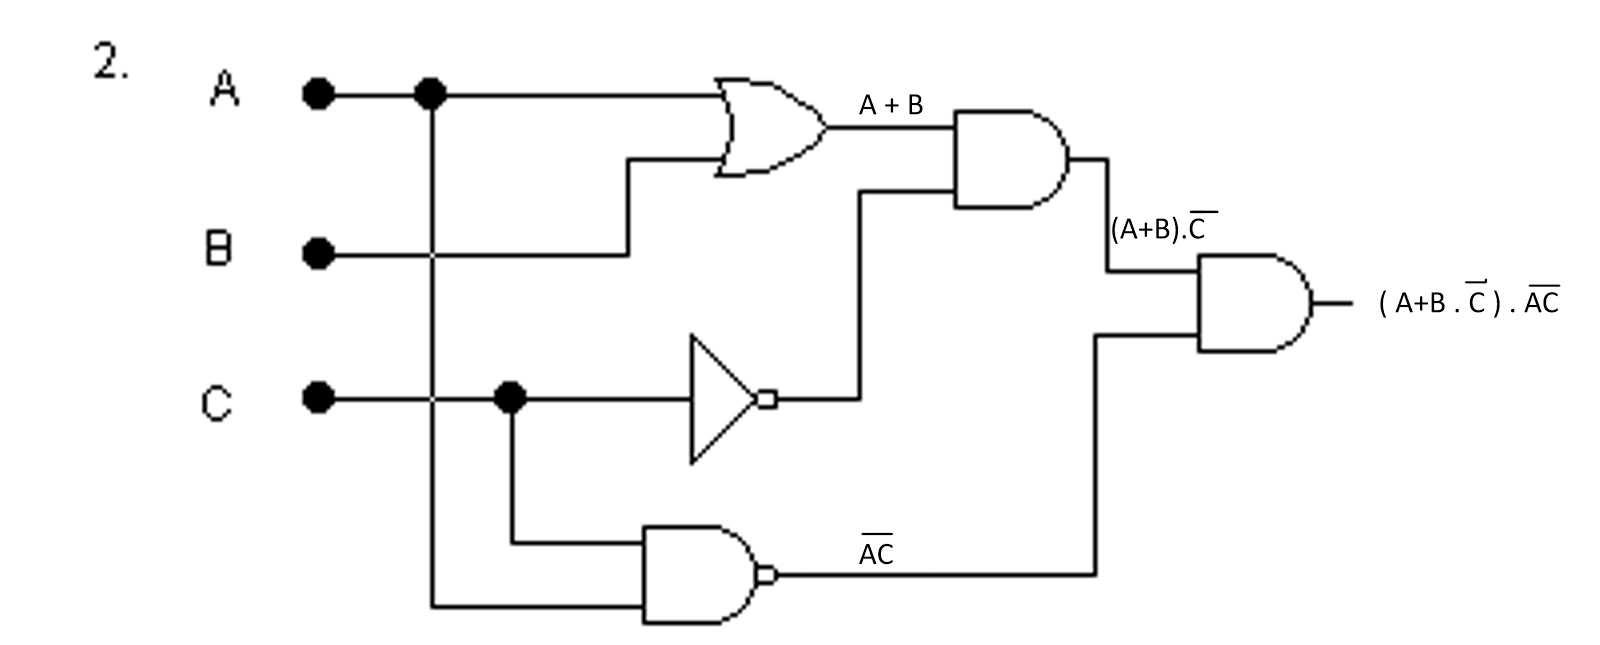 logic gate circuit ~ Study with Prandana